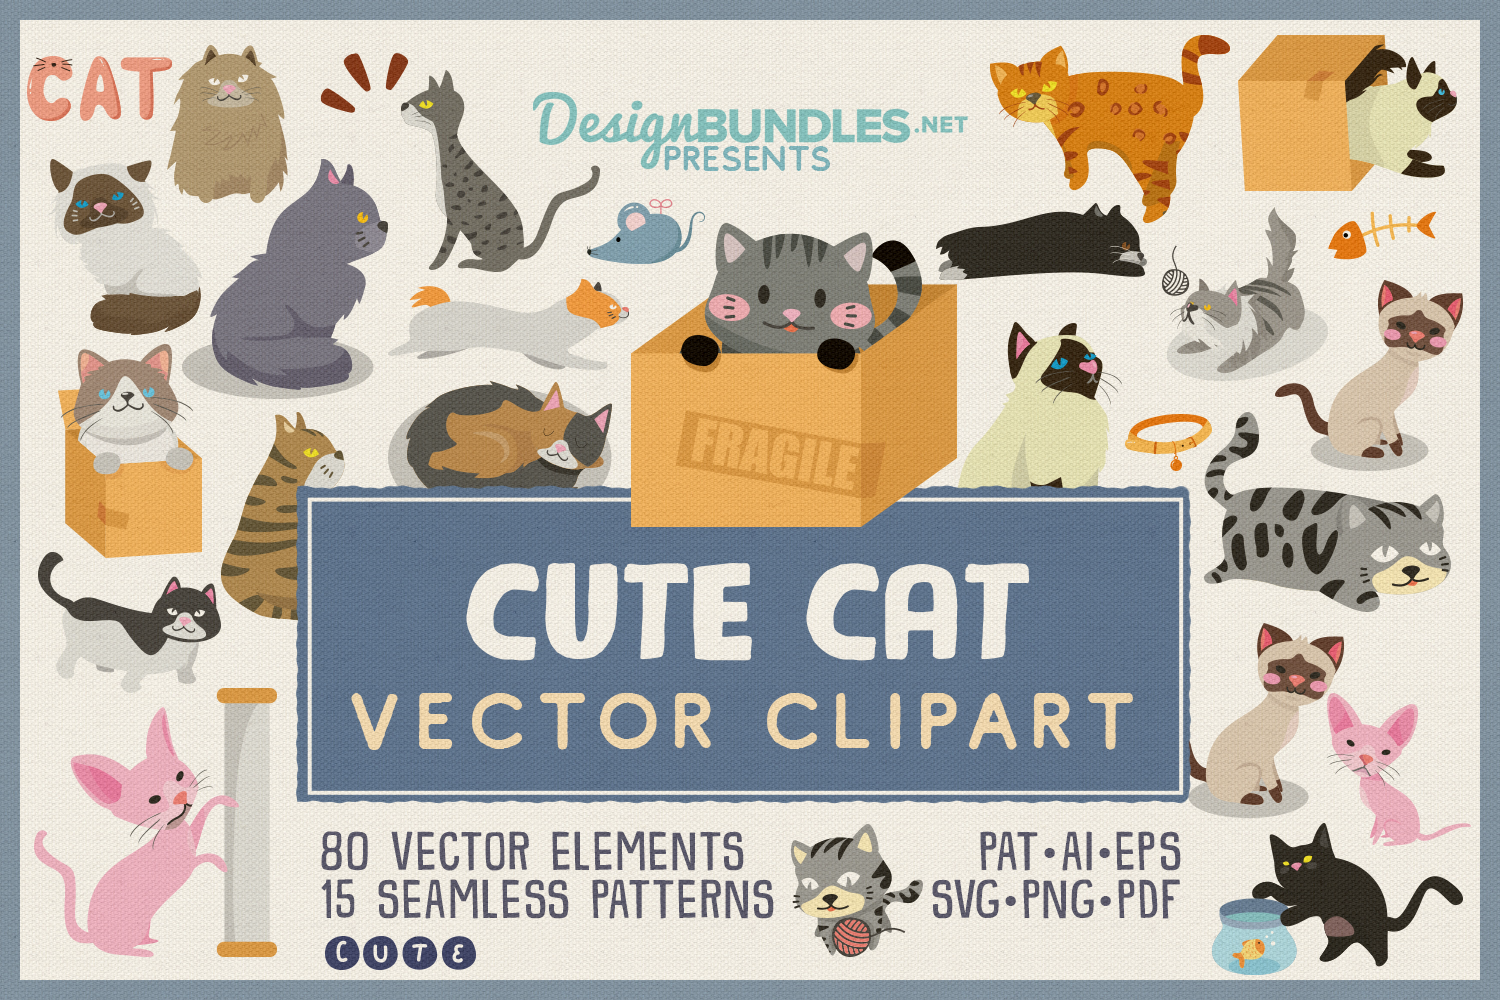 80 Cute Cat Vector Clipart & Seamless Patterns example image 1